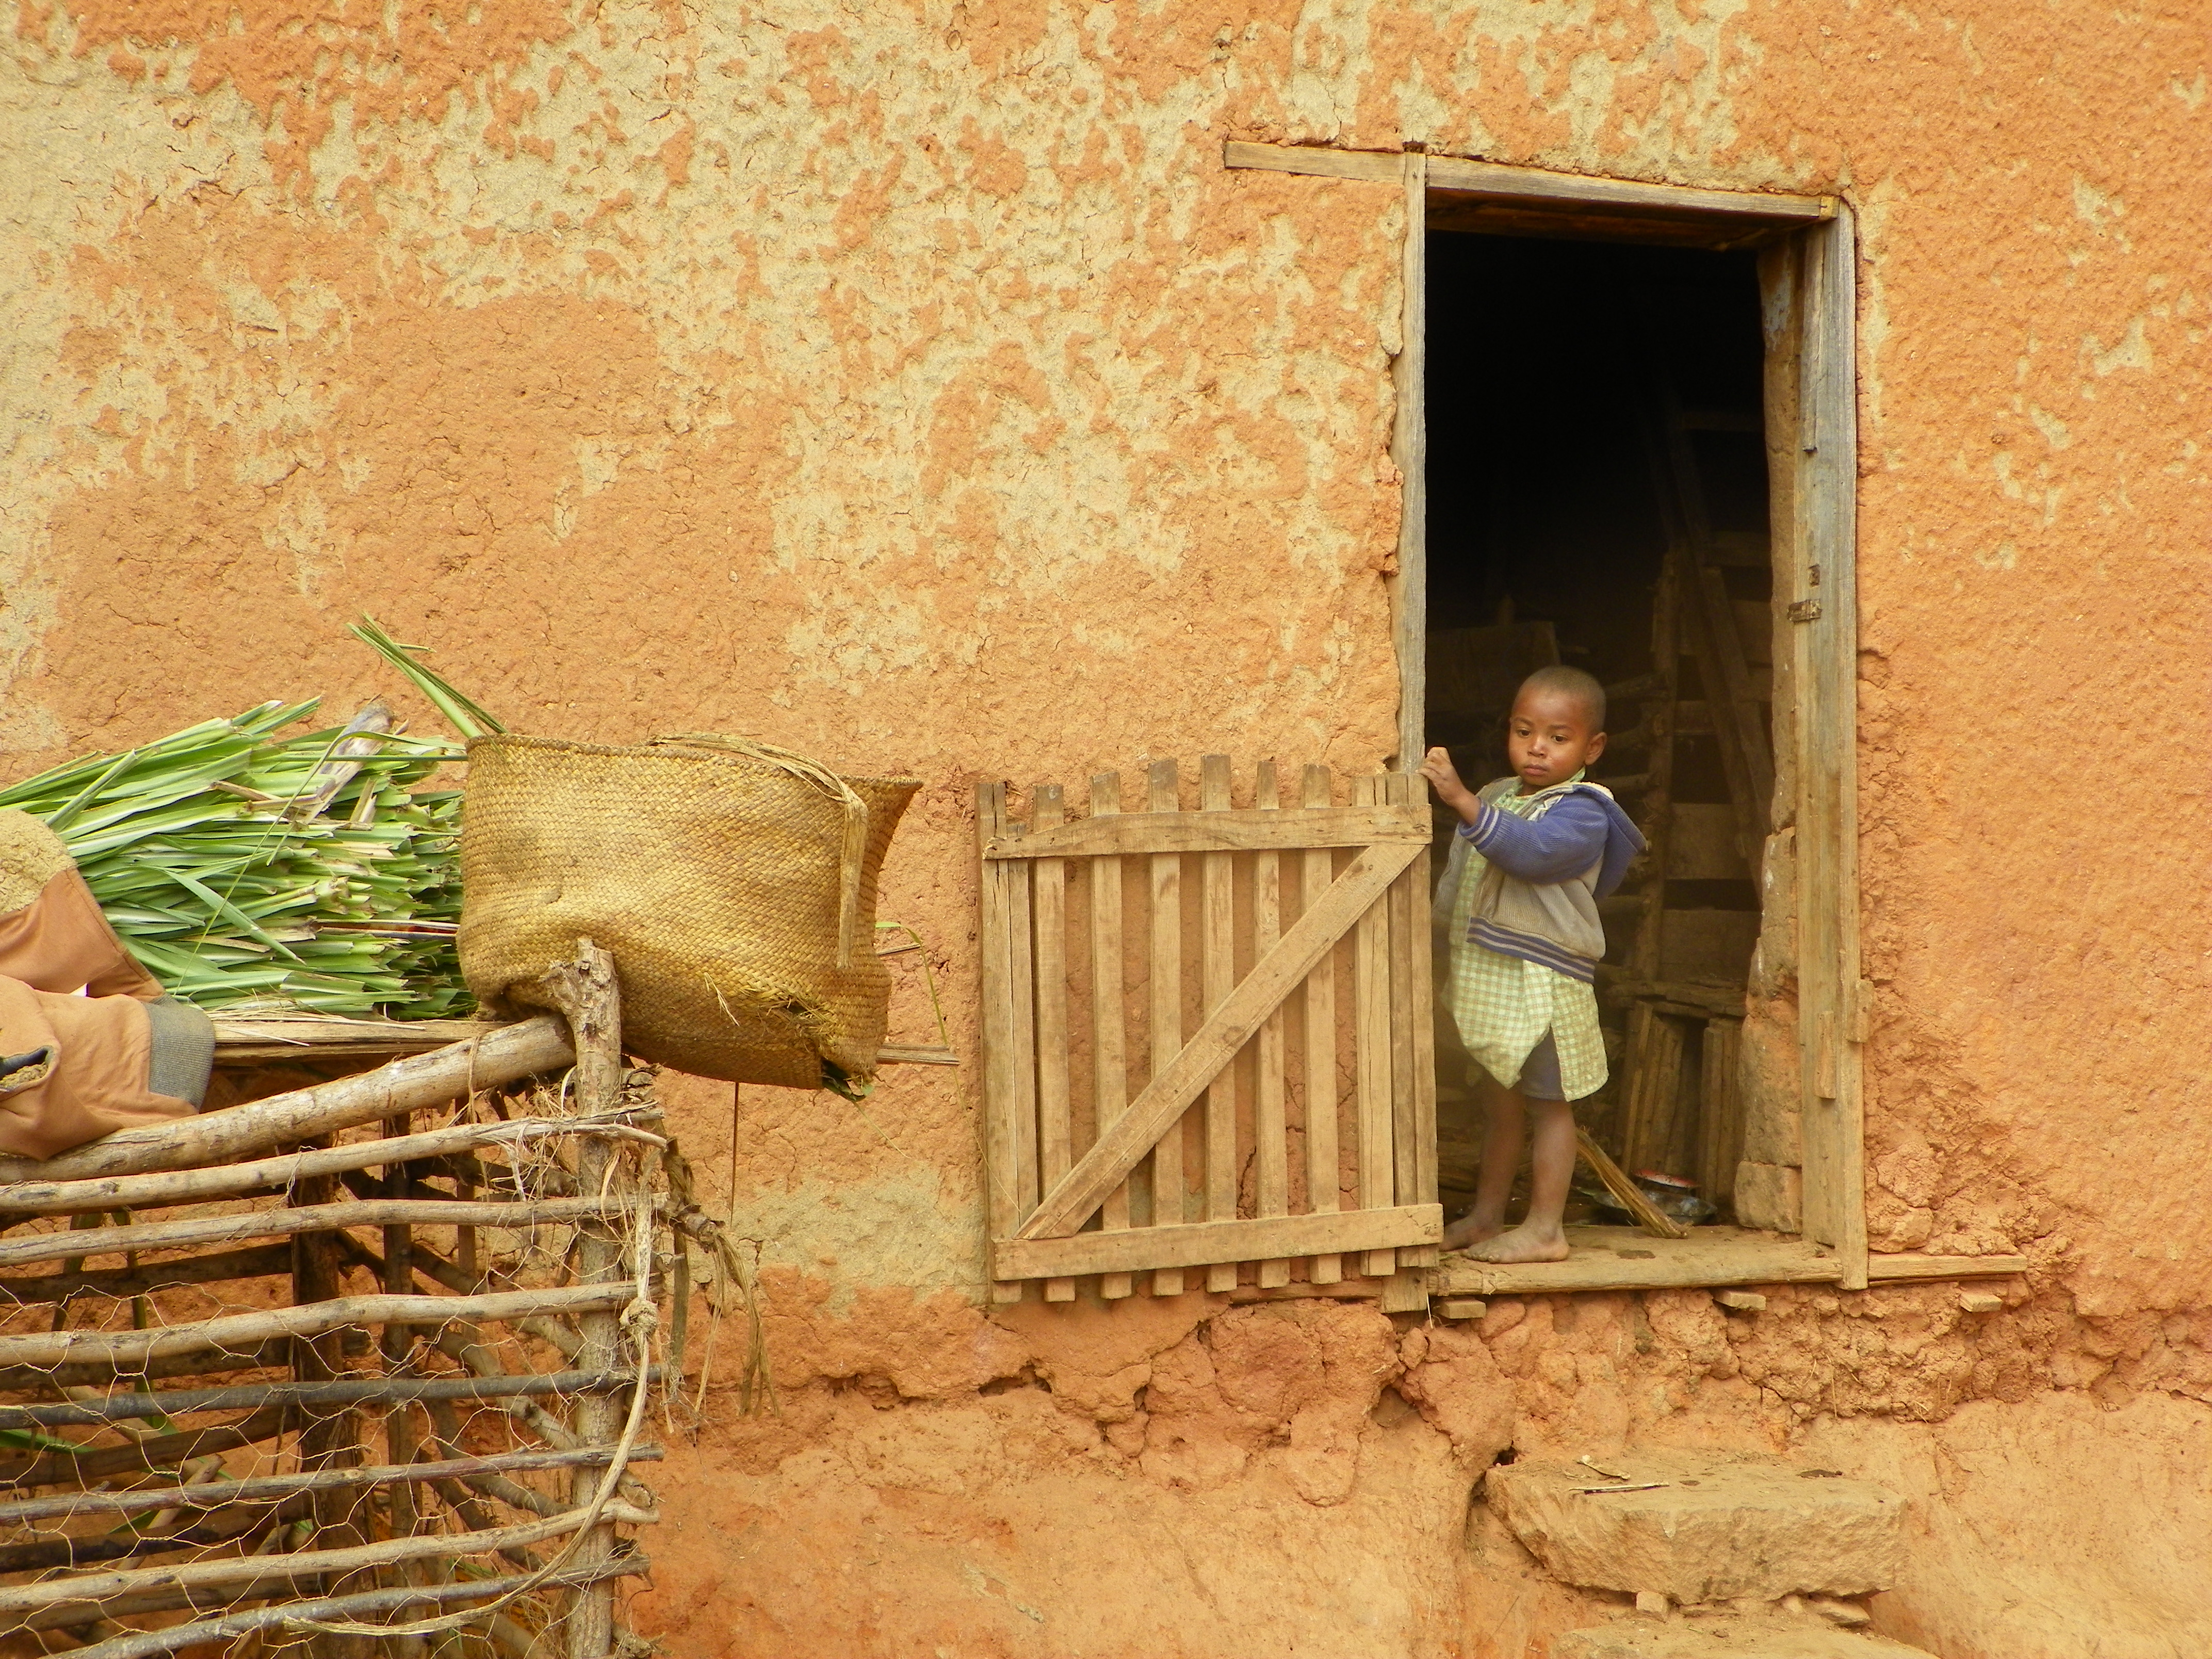 a young boy stands in a doorway of a rough clay colored building